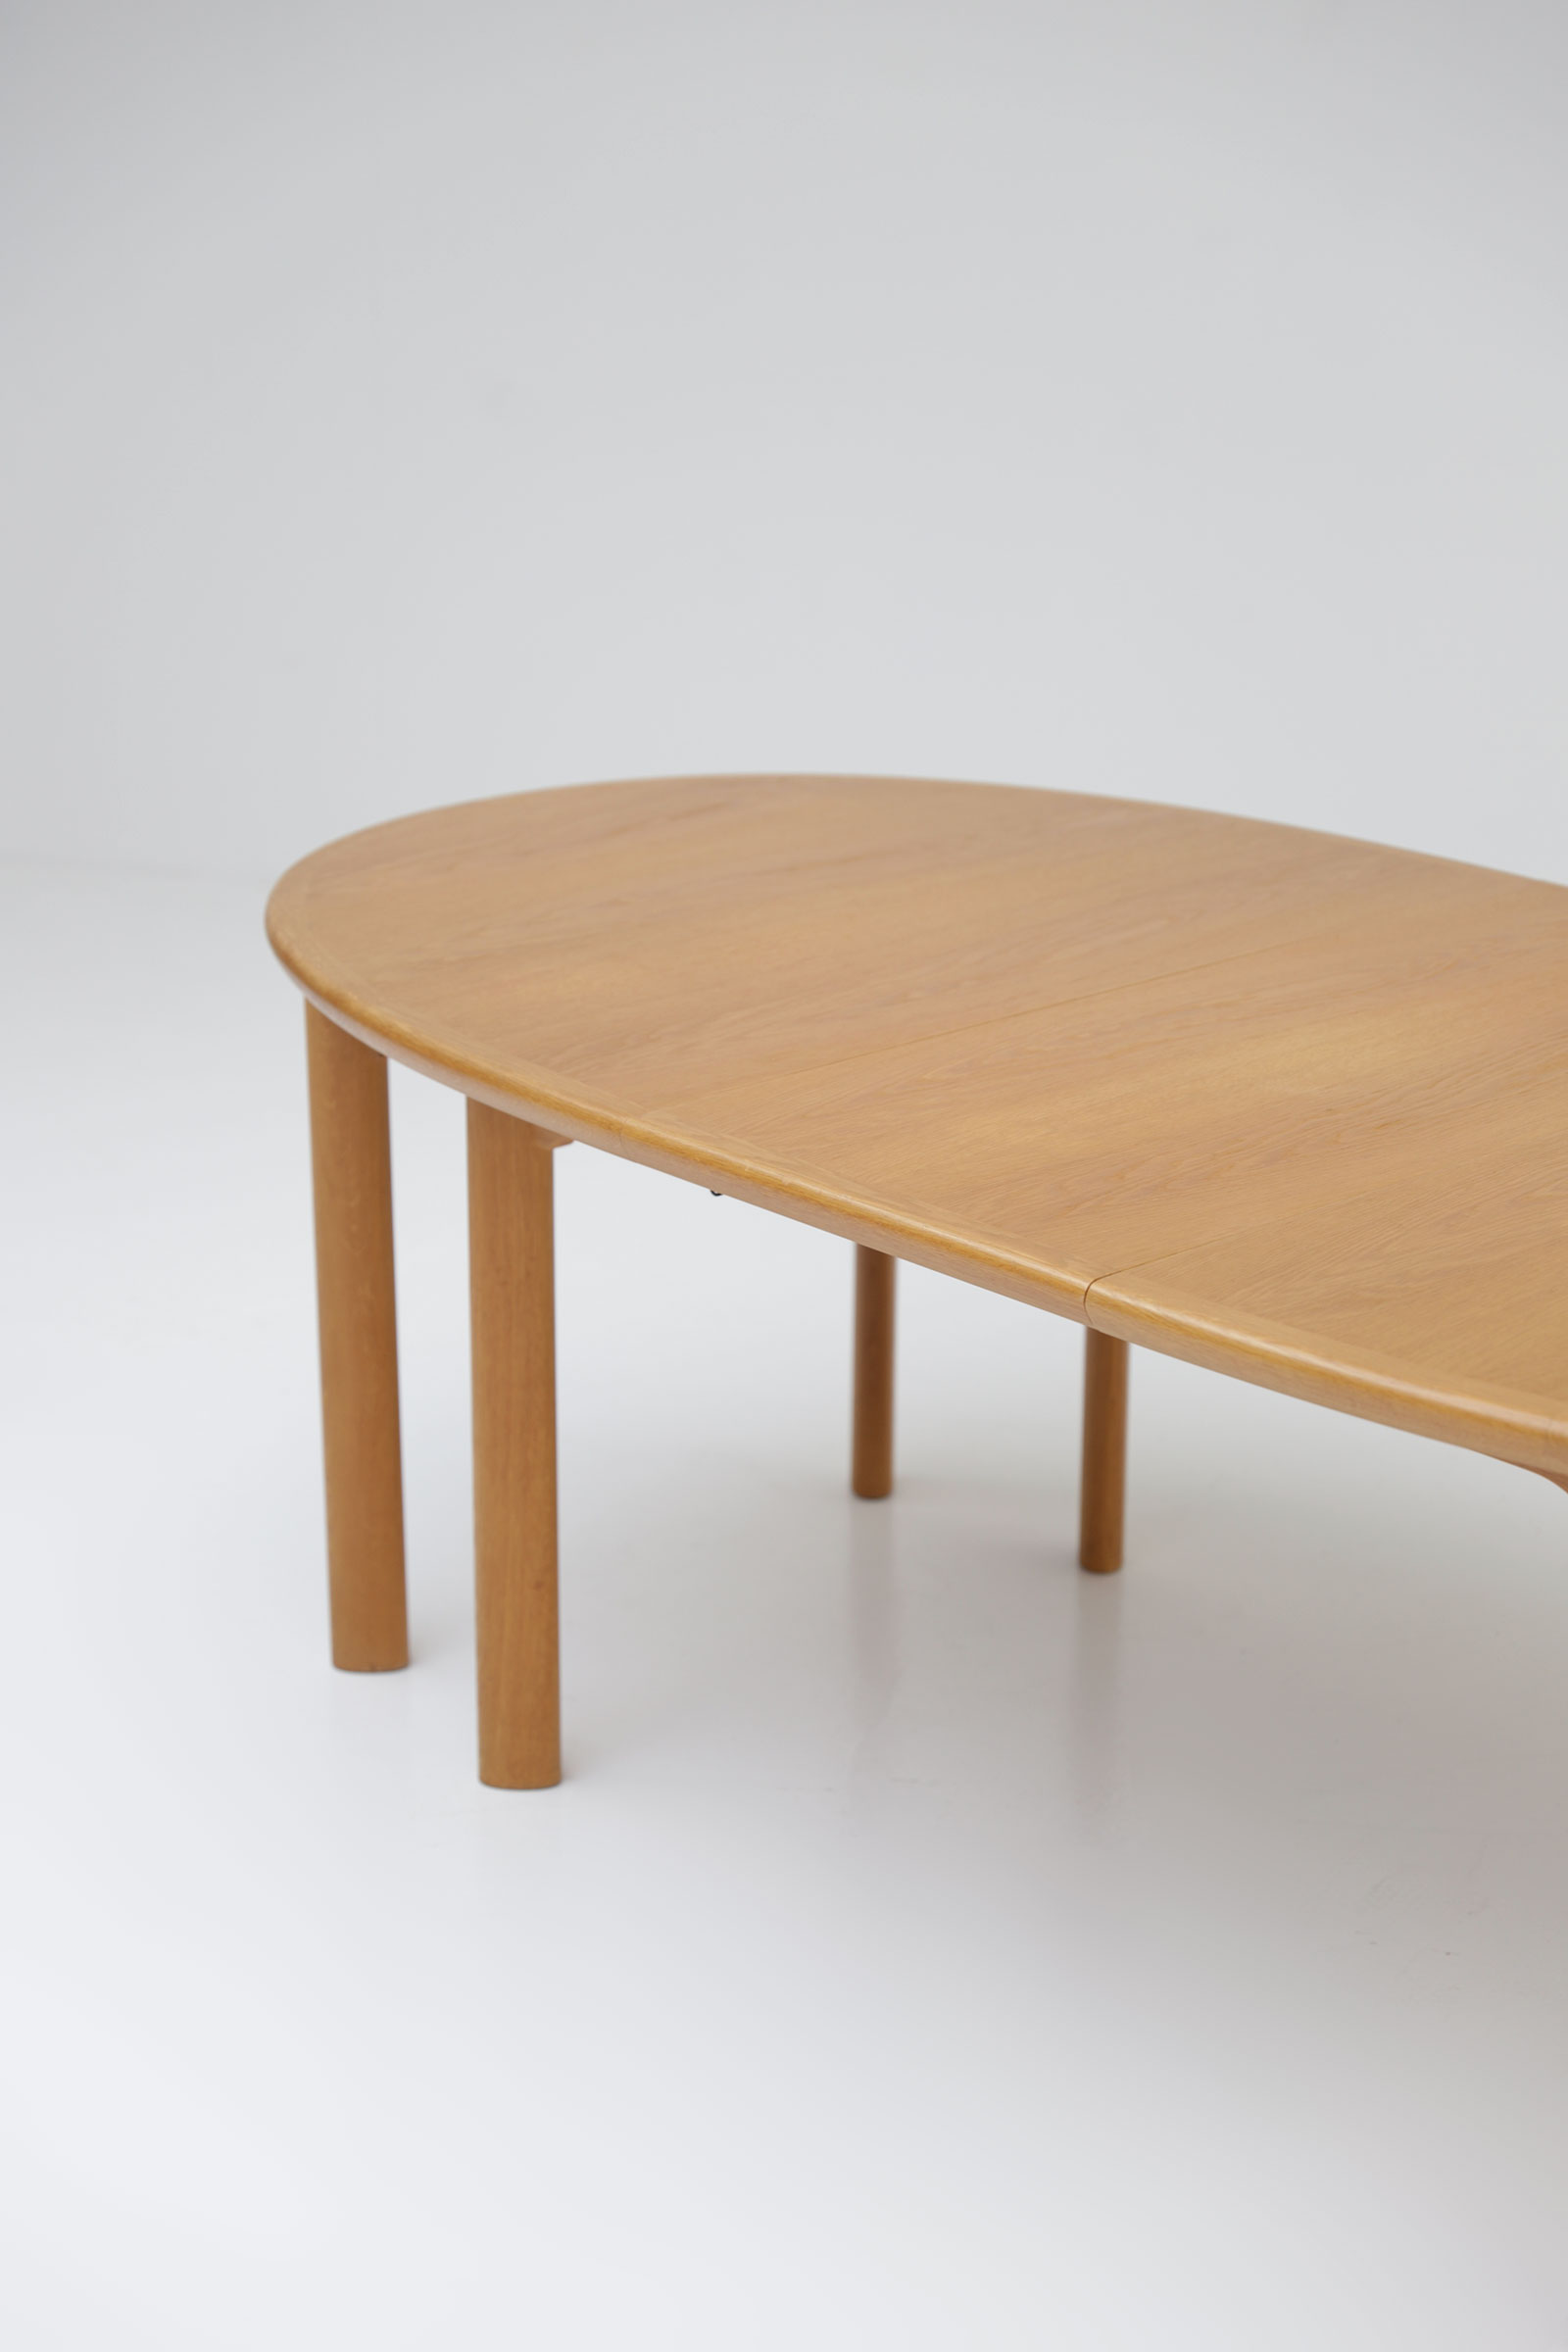 Oak Dining Table Van Den Berghe Pauversimage 6